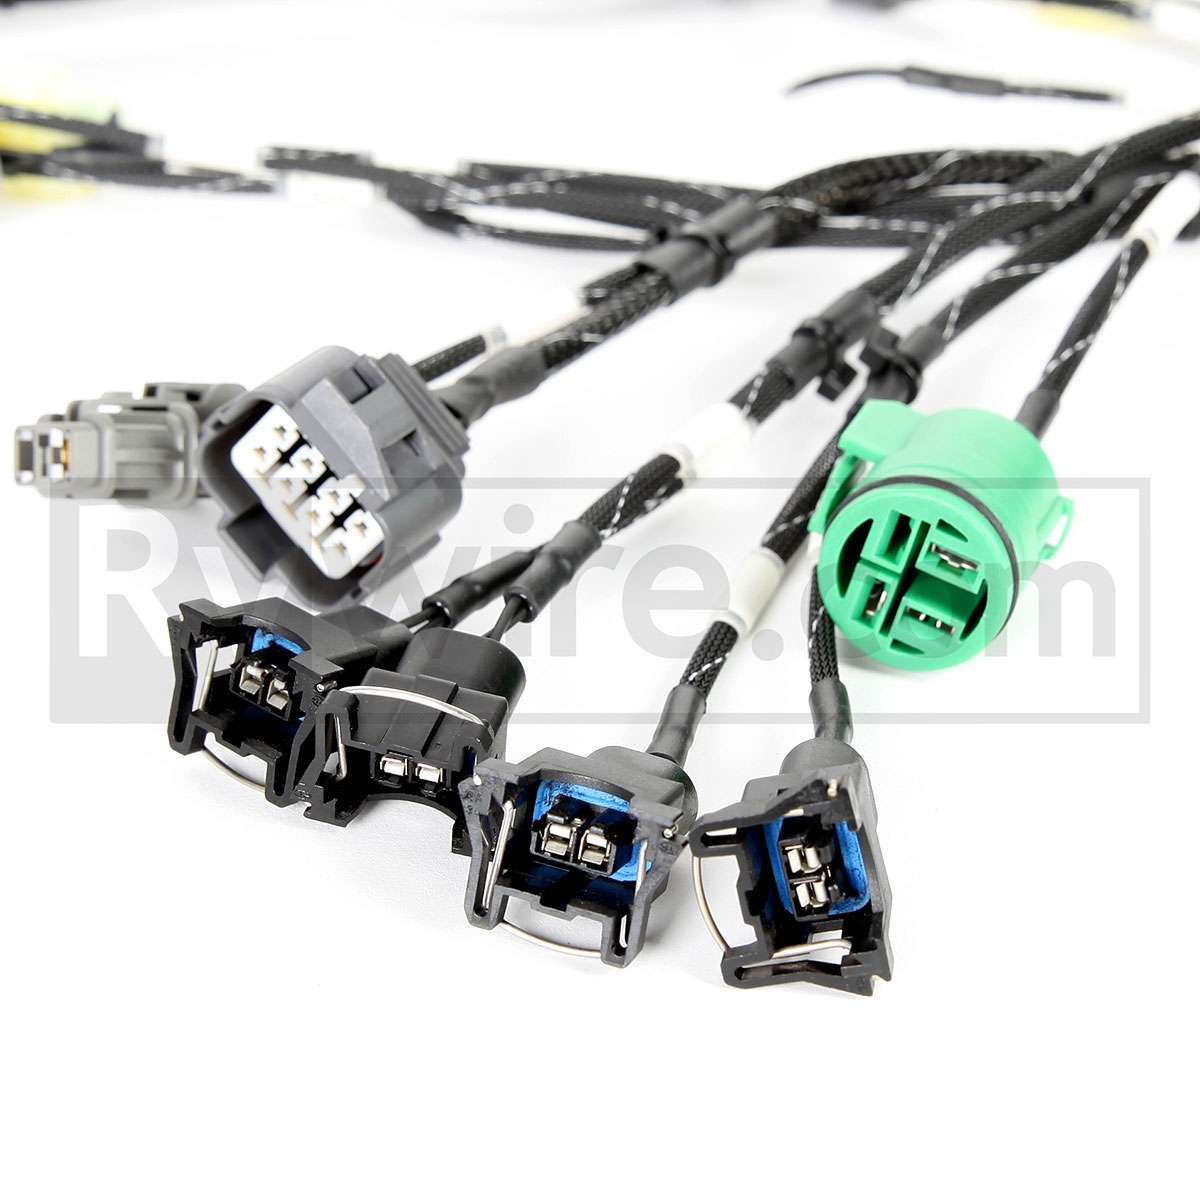 B1 Base 4?1403534211 rywire com budget d & b series tucked engine harness 99-00 civic si wiring harness at edmiracle.co